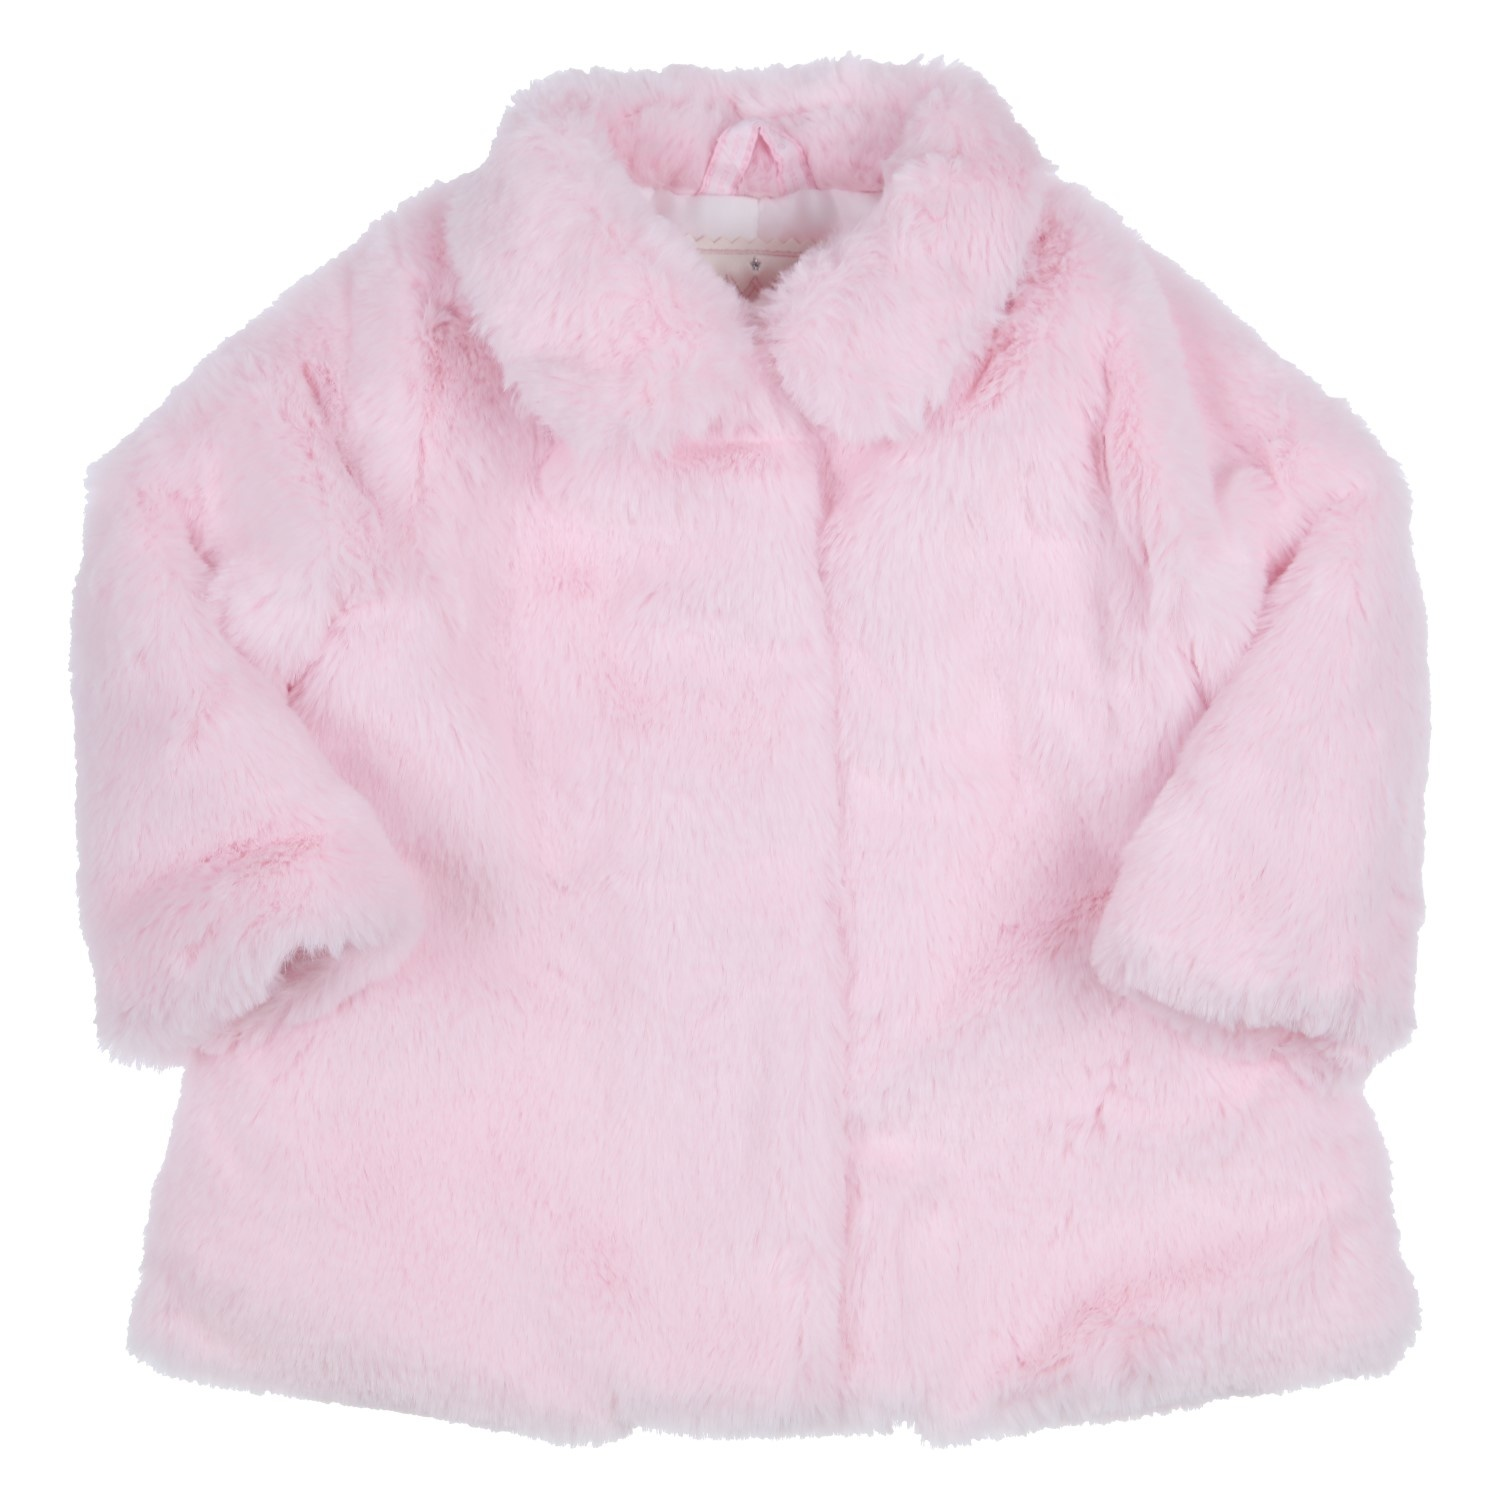 Gymp Gymp Pink Coat - 1852